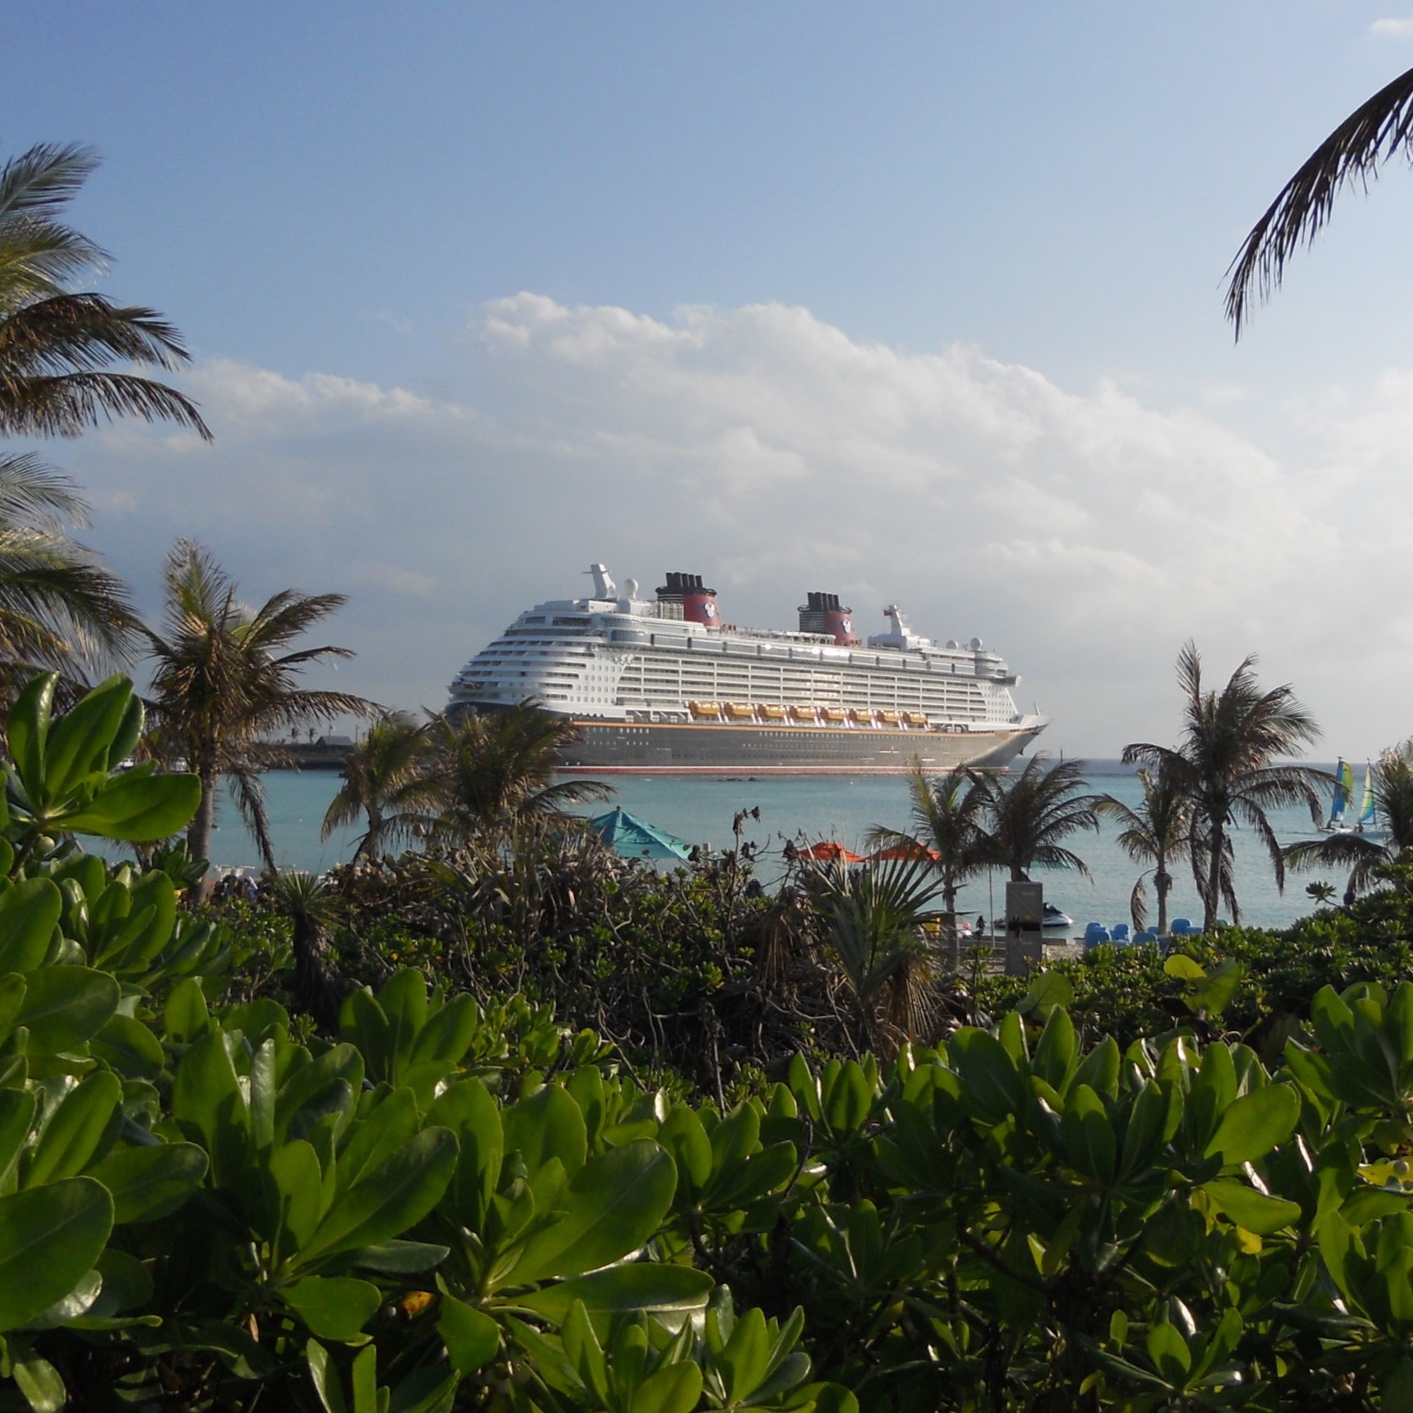 Our next vacation we are saving up for is a Disney Cruise in January!